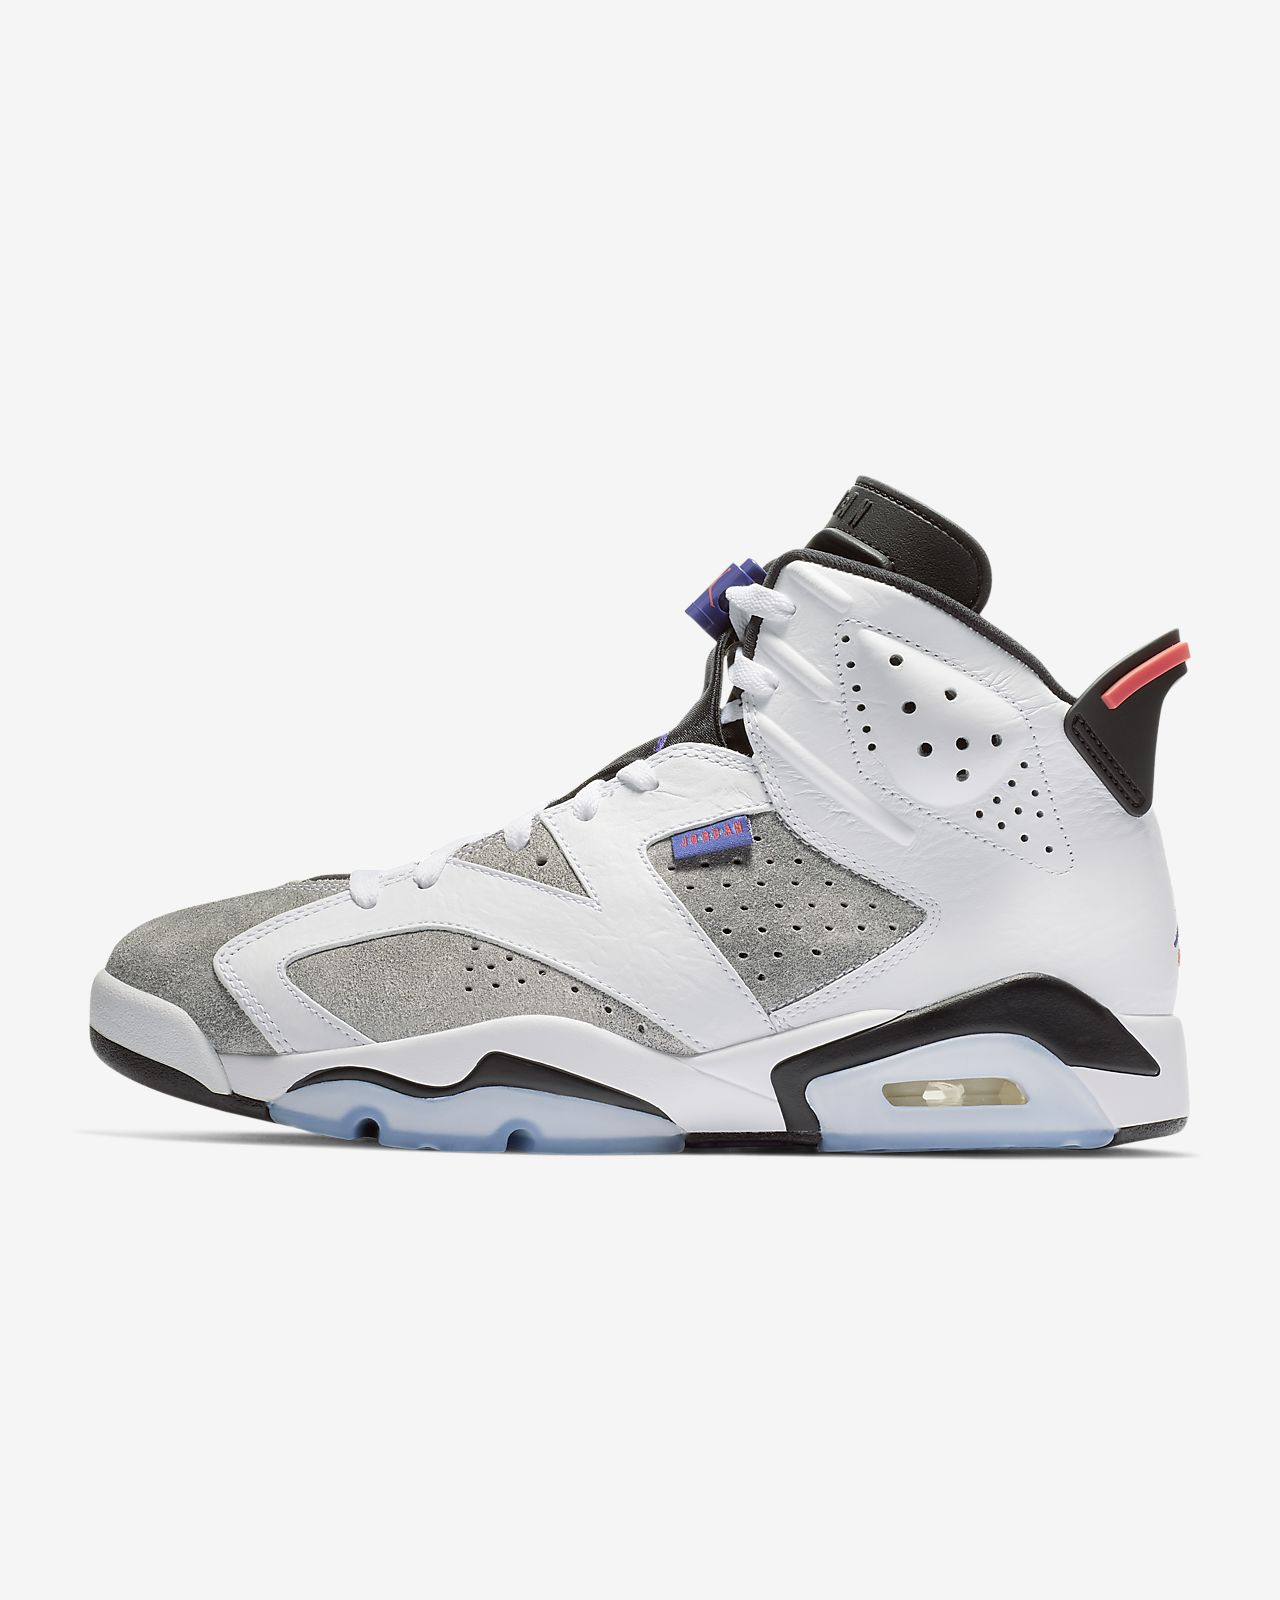 Air Jordan 6 Retro Men's Shoe